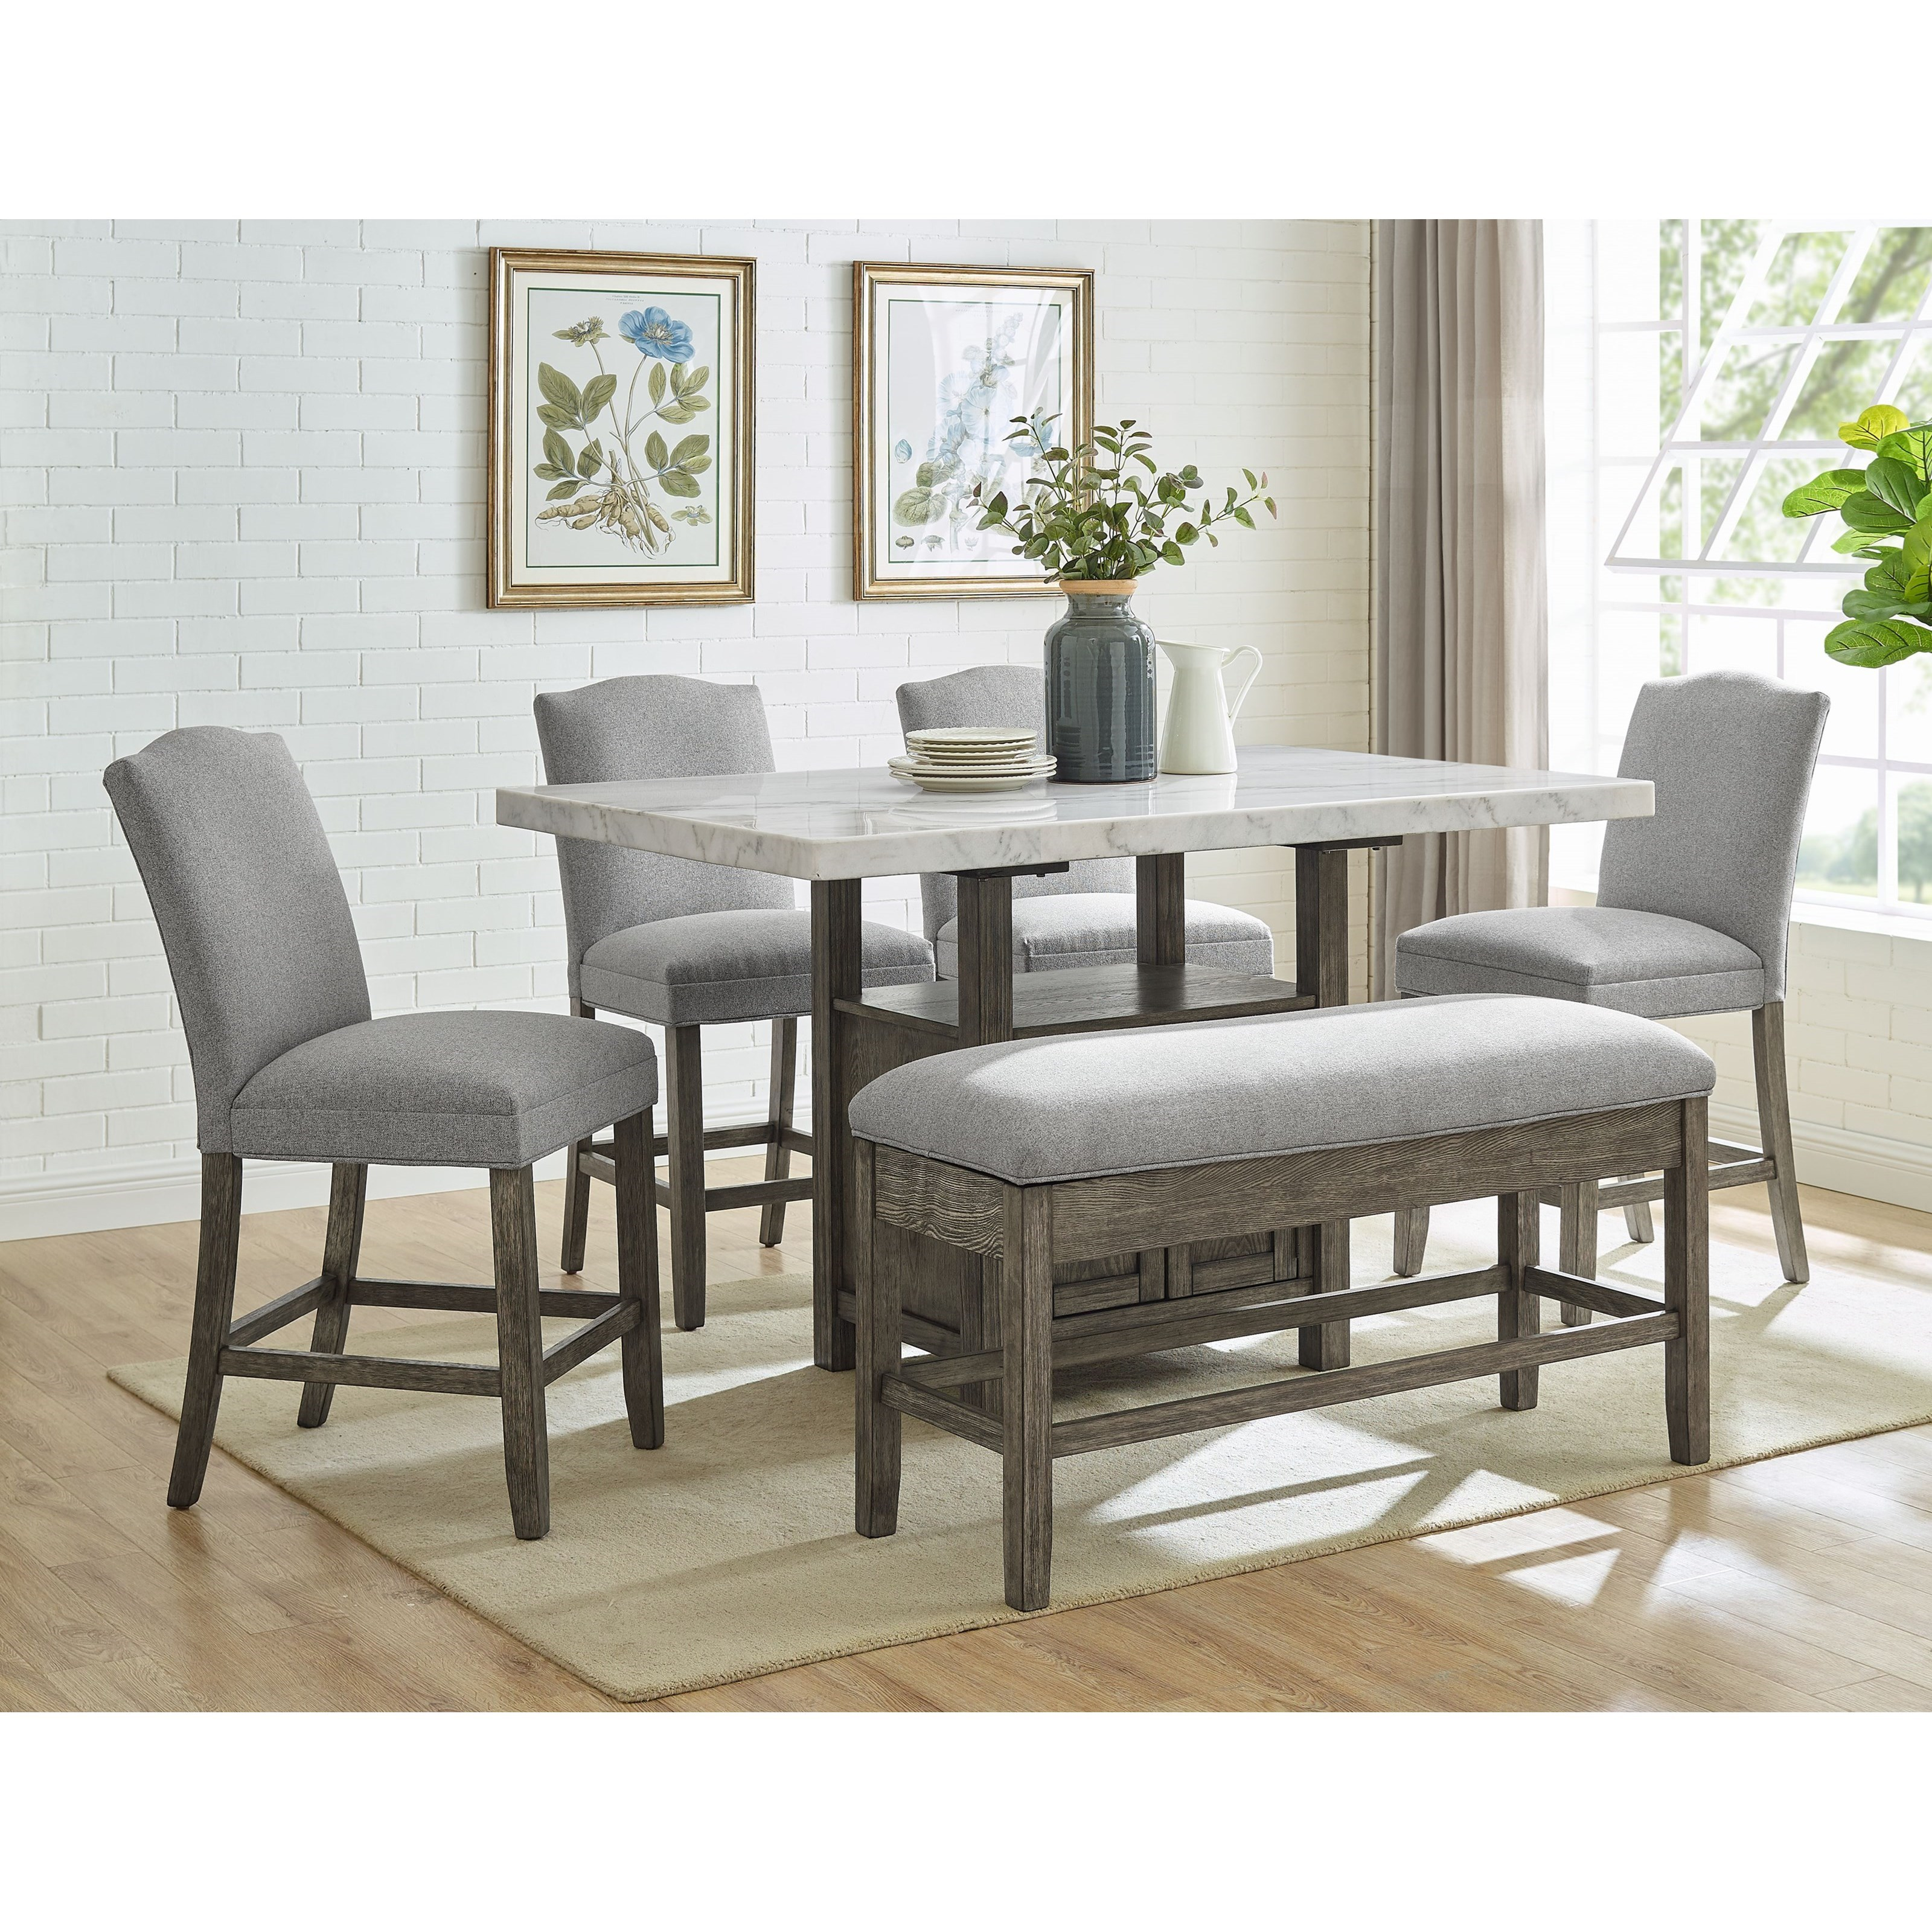 Grayson Counter Height Dining Set with Bench by Steve Silver at Northeast Factory Direct